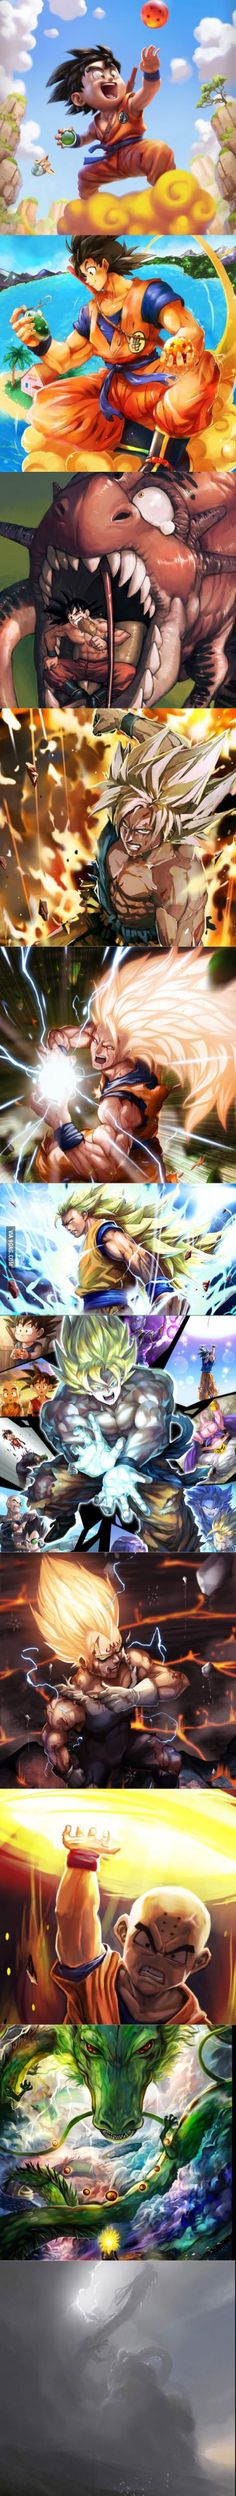 Beautiful DBZ artwork.